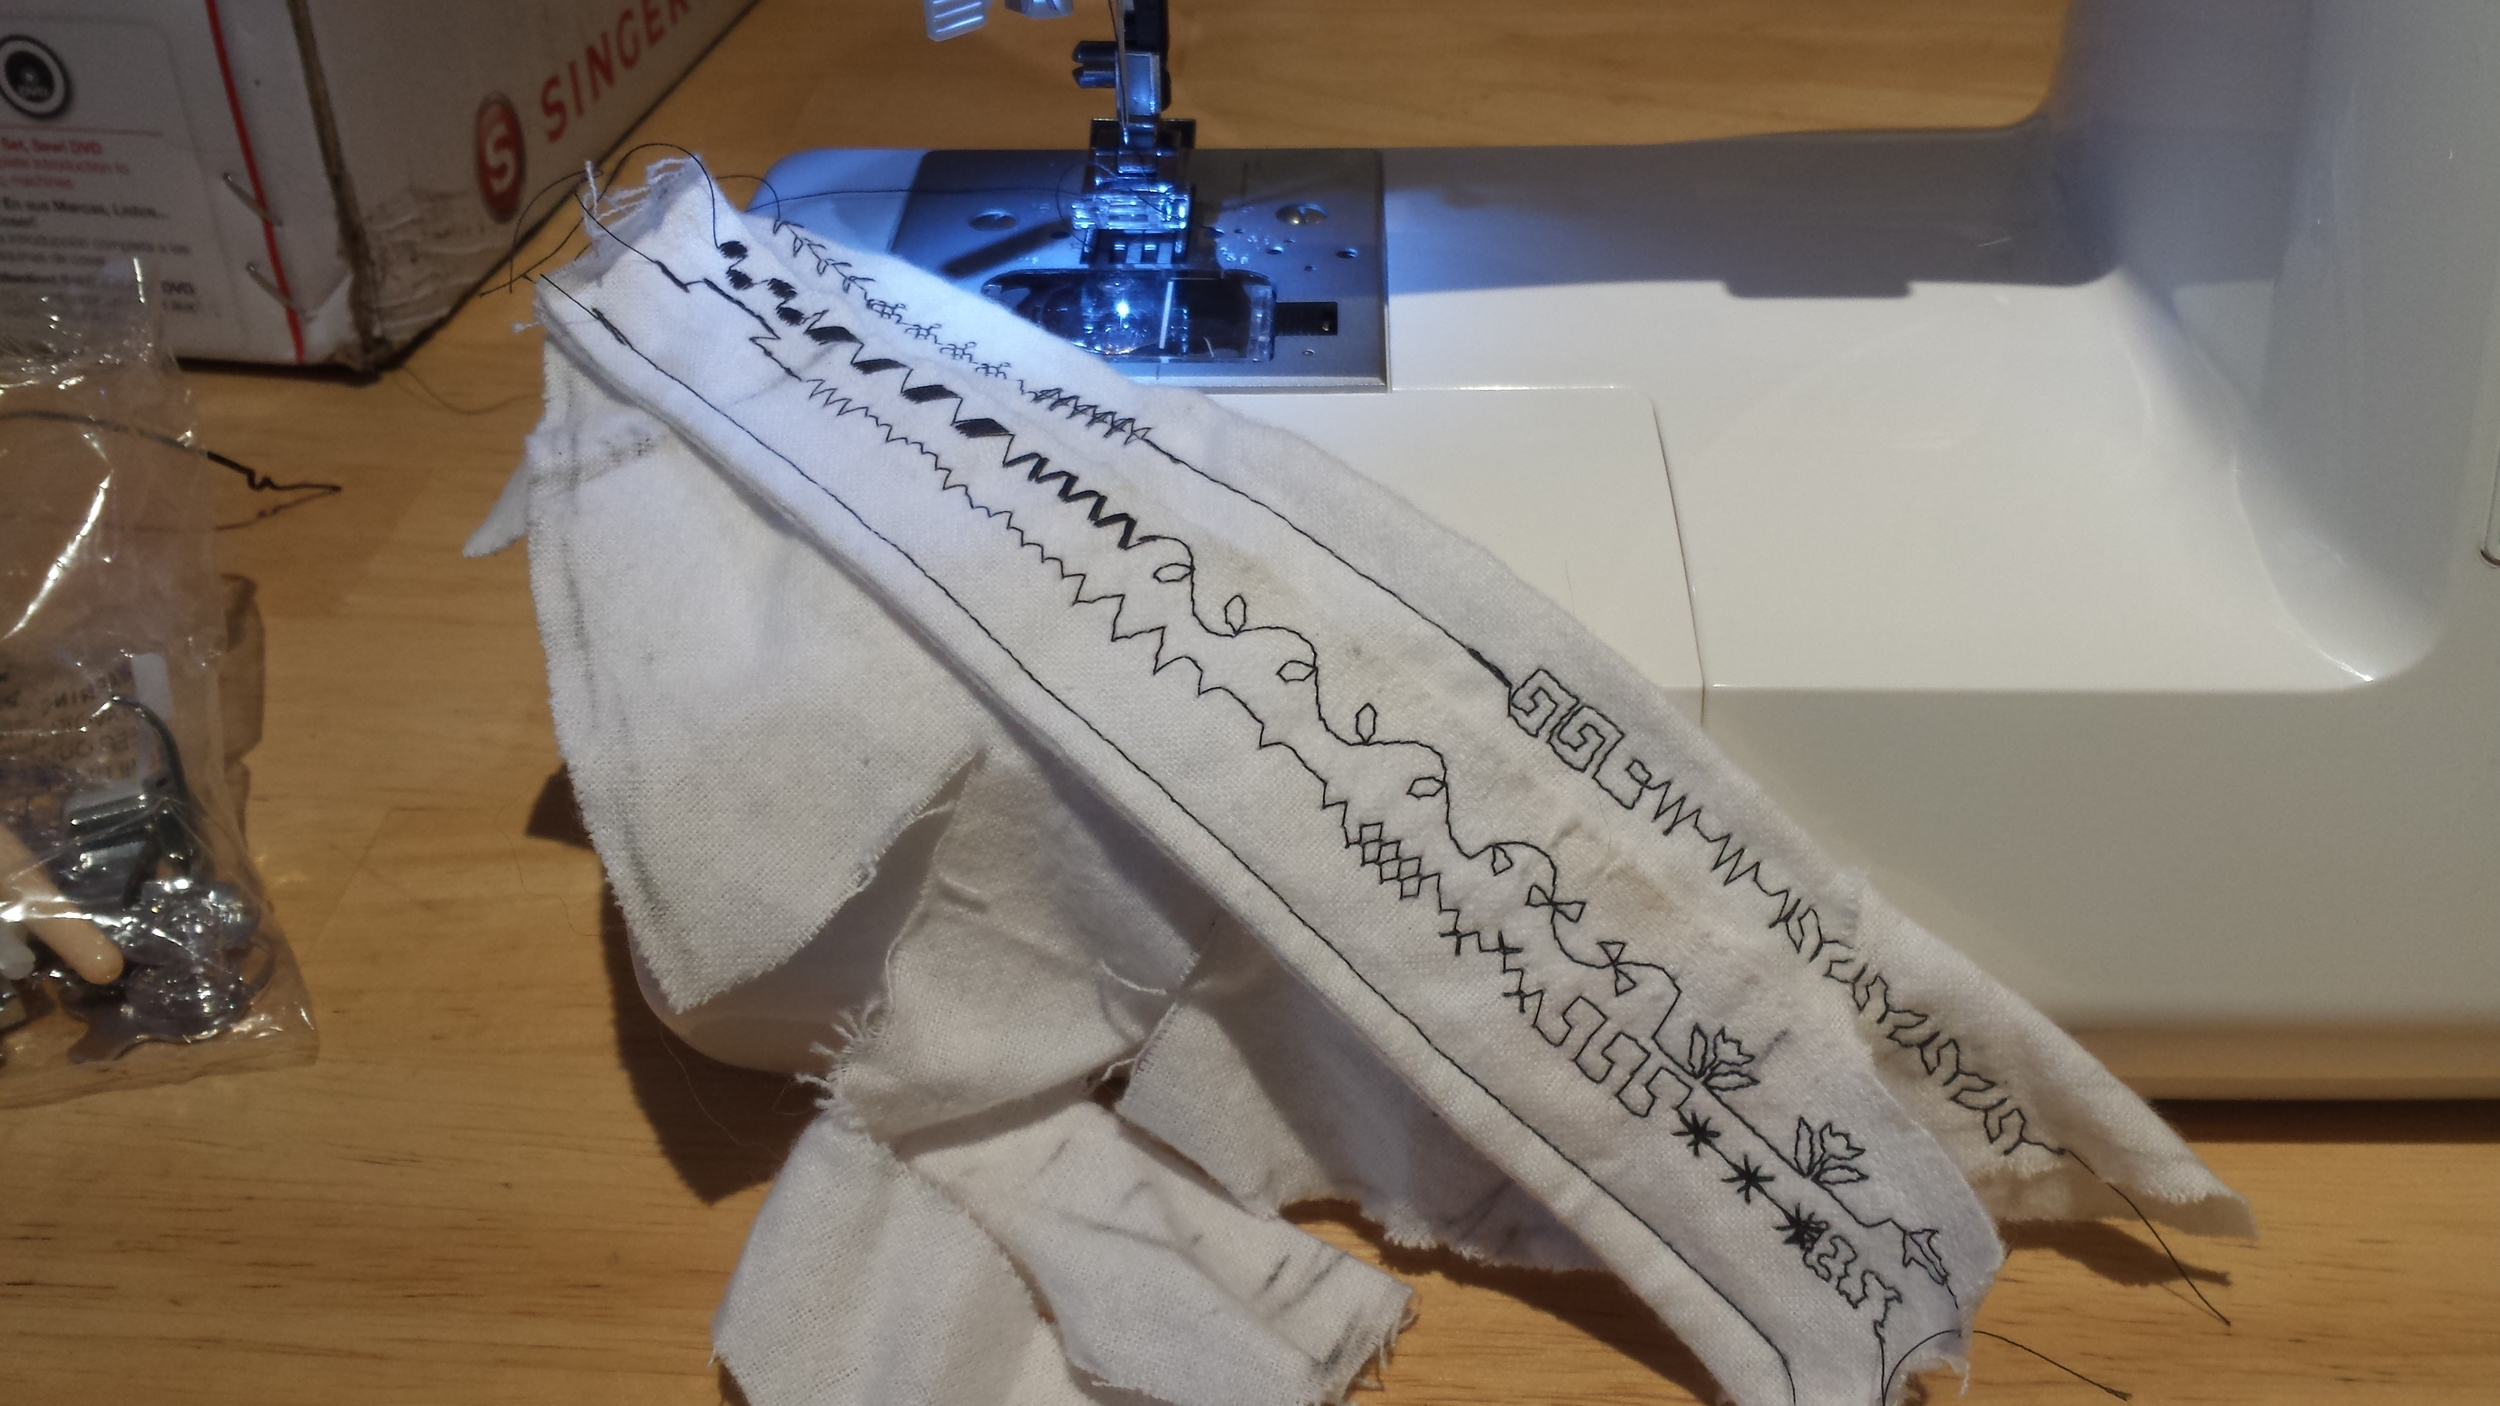 Testing the special stiches for the Singer 7258 sewing machine